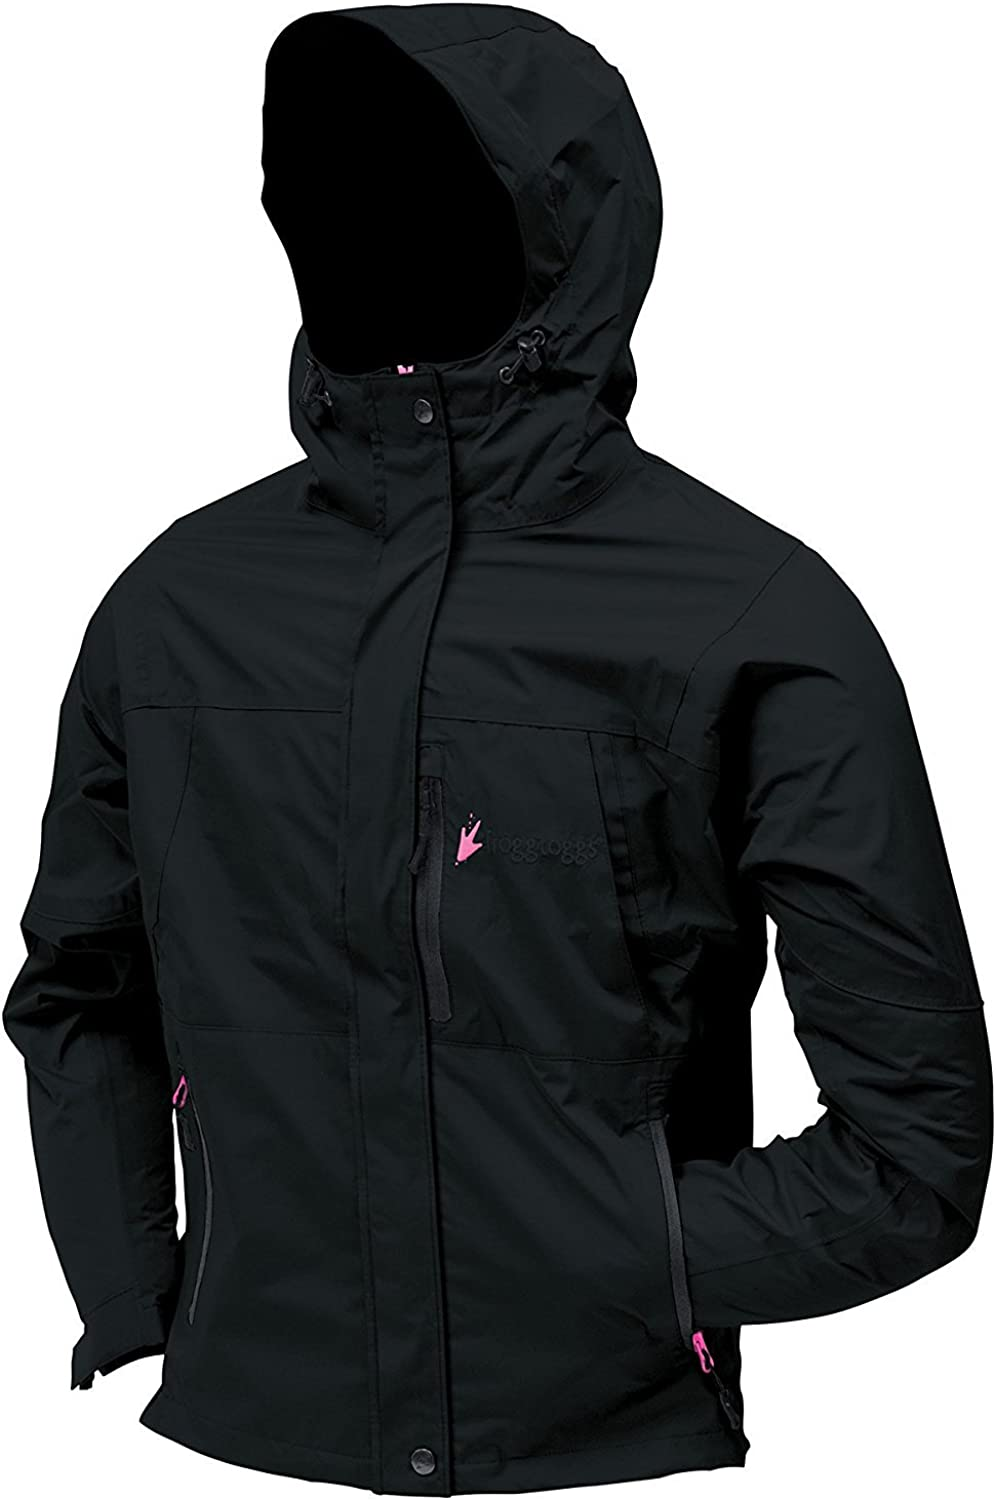 Frogg Toggs Women's Toad Rage II Jacket, Black, NT6551101SM, Small